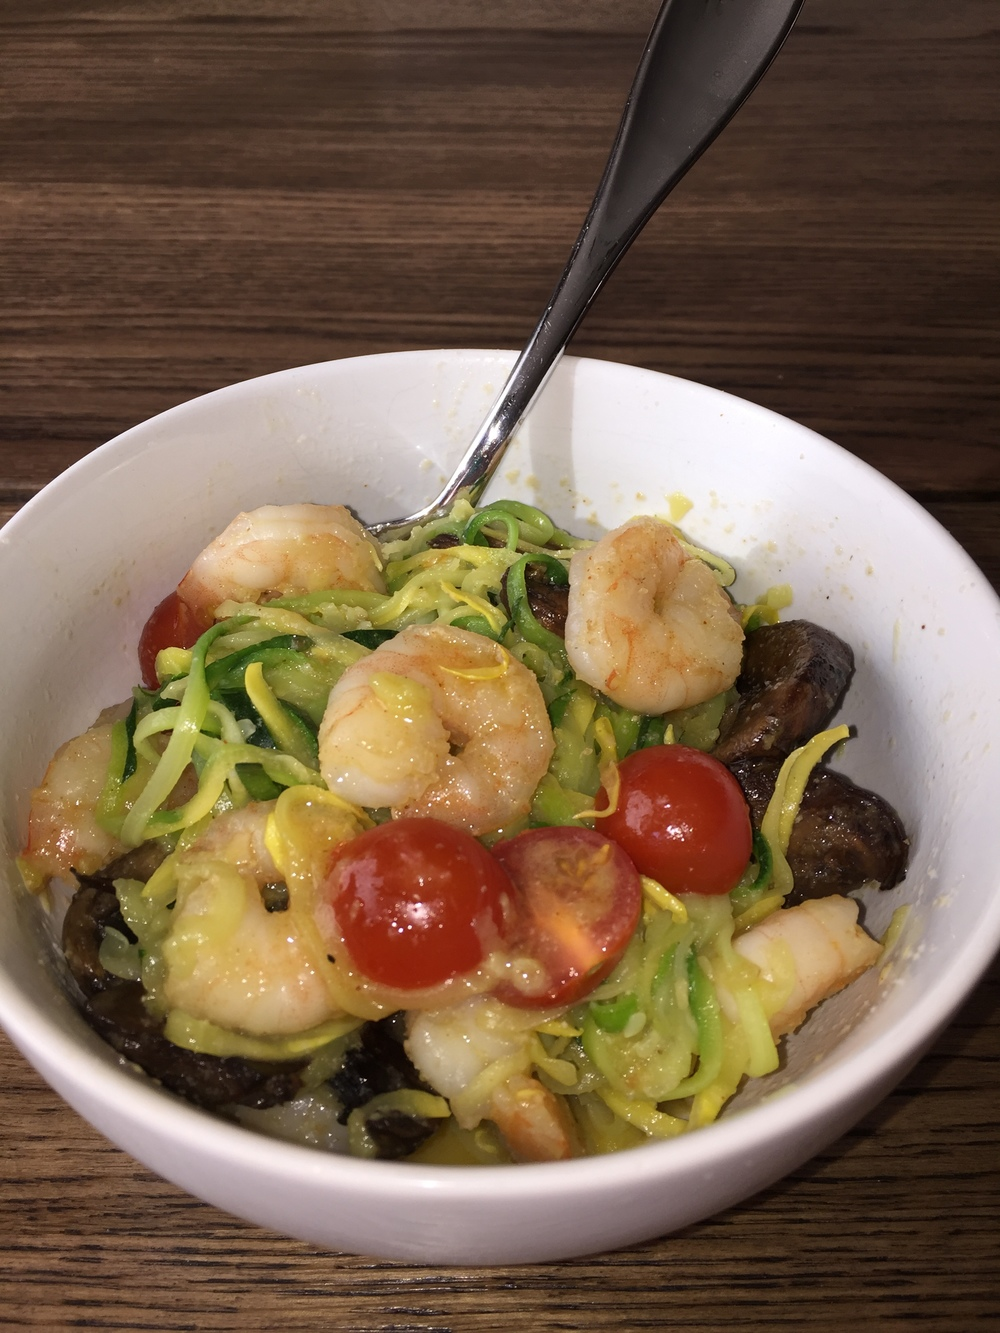 Rceipe for basal garlic shrimp pasta